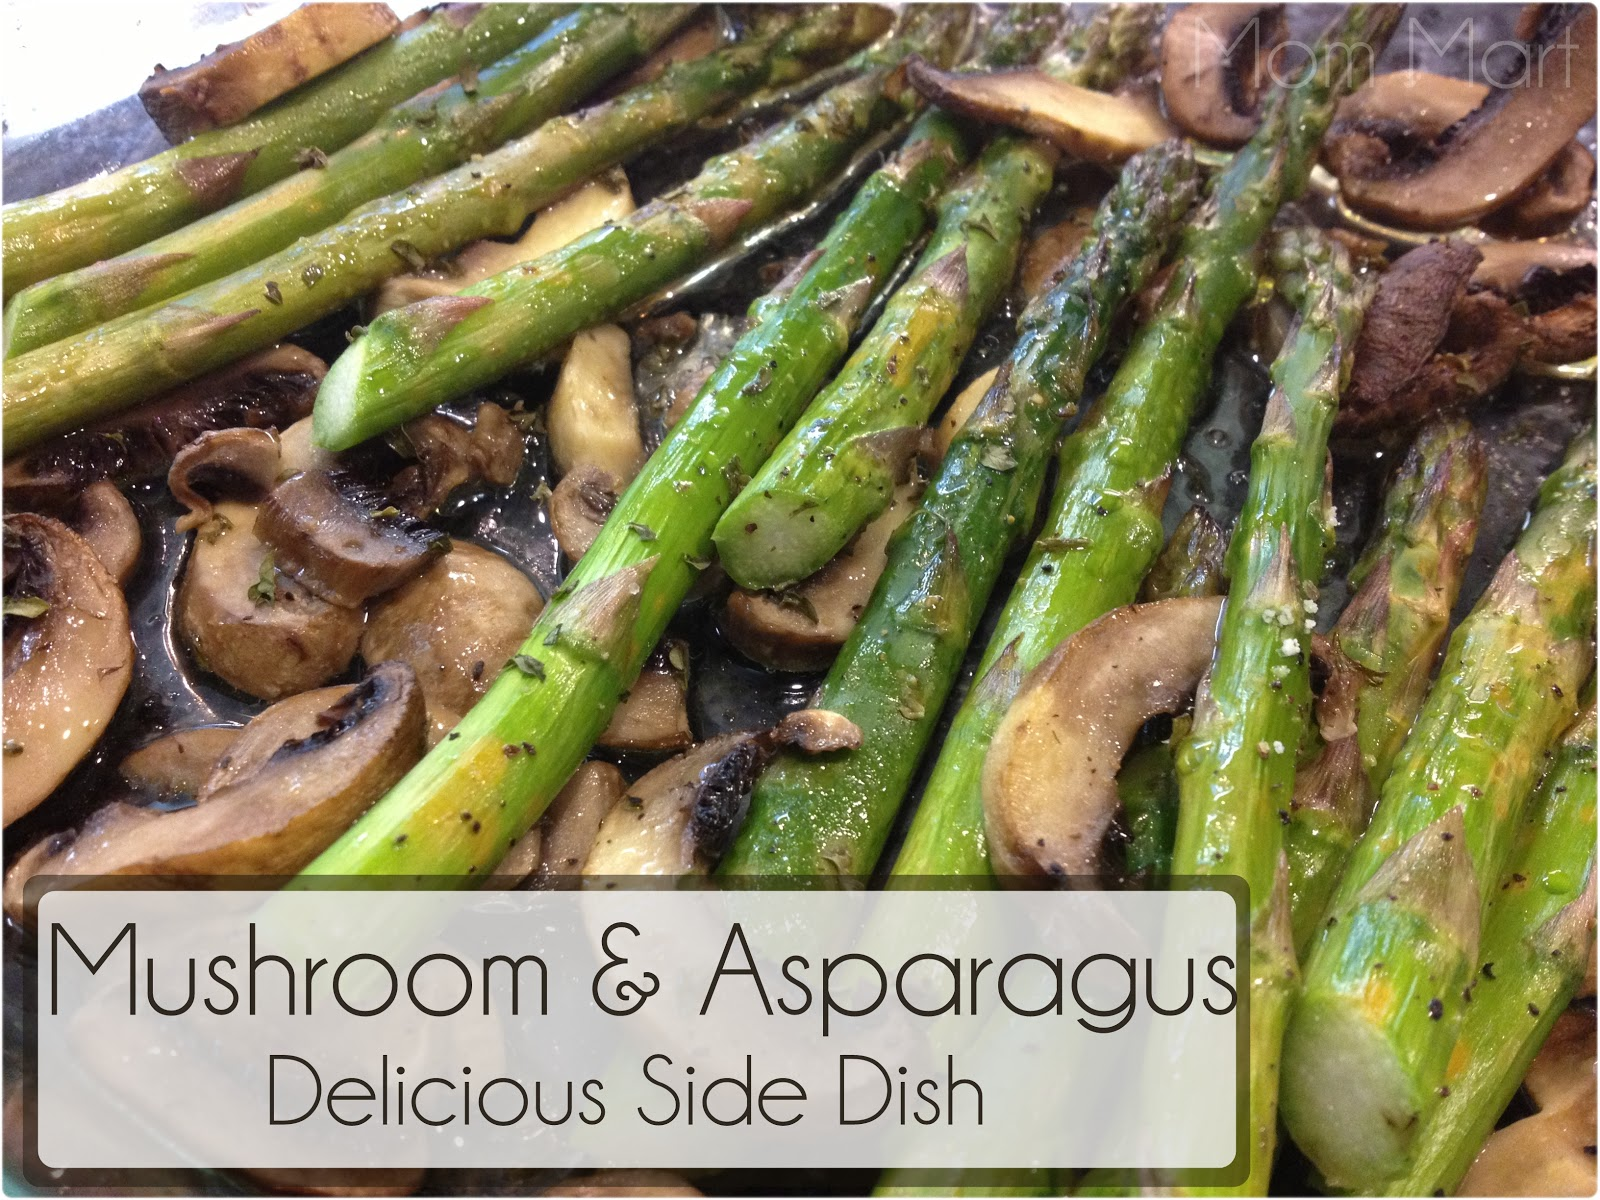 Mom Mart Mushroom And Asparagus Delicious Side Dish Recipe